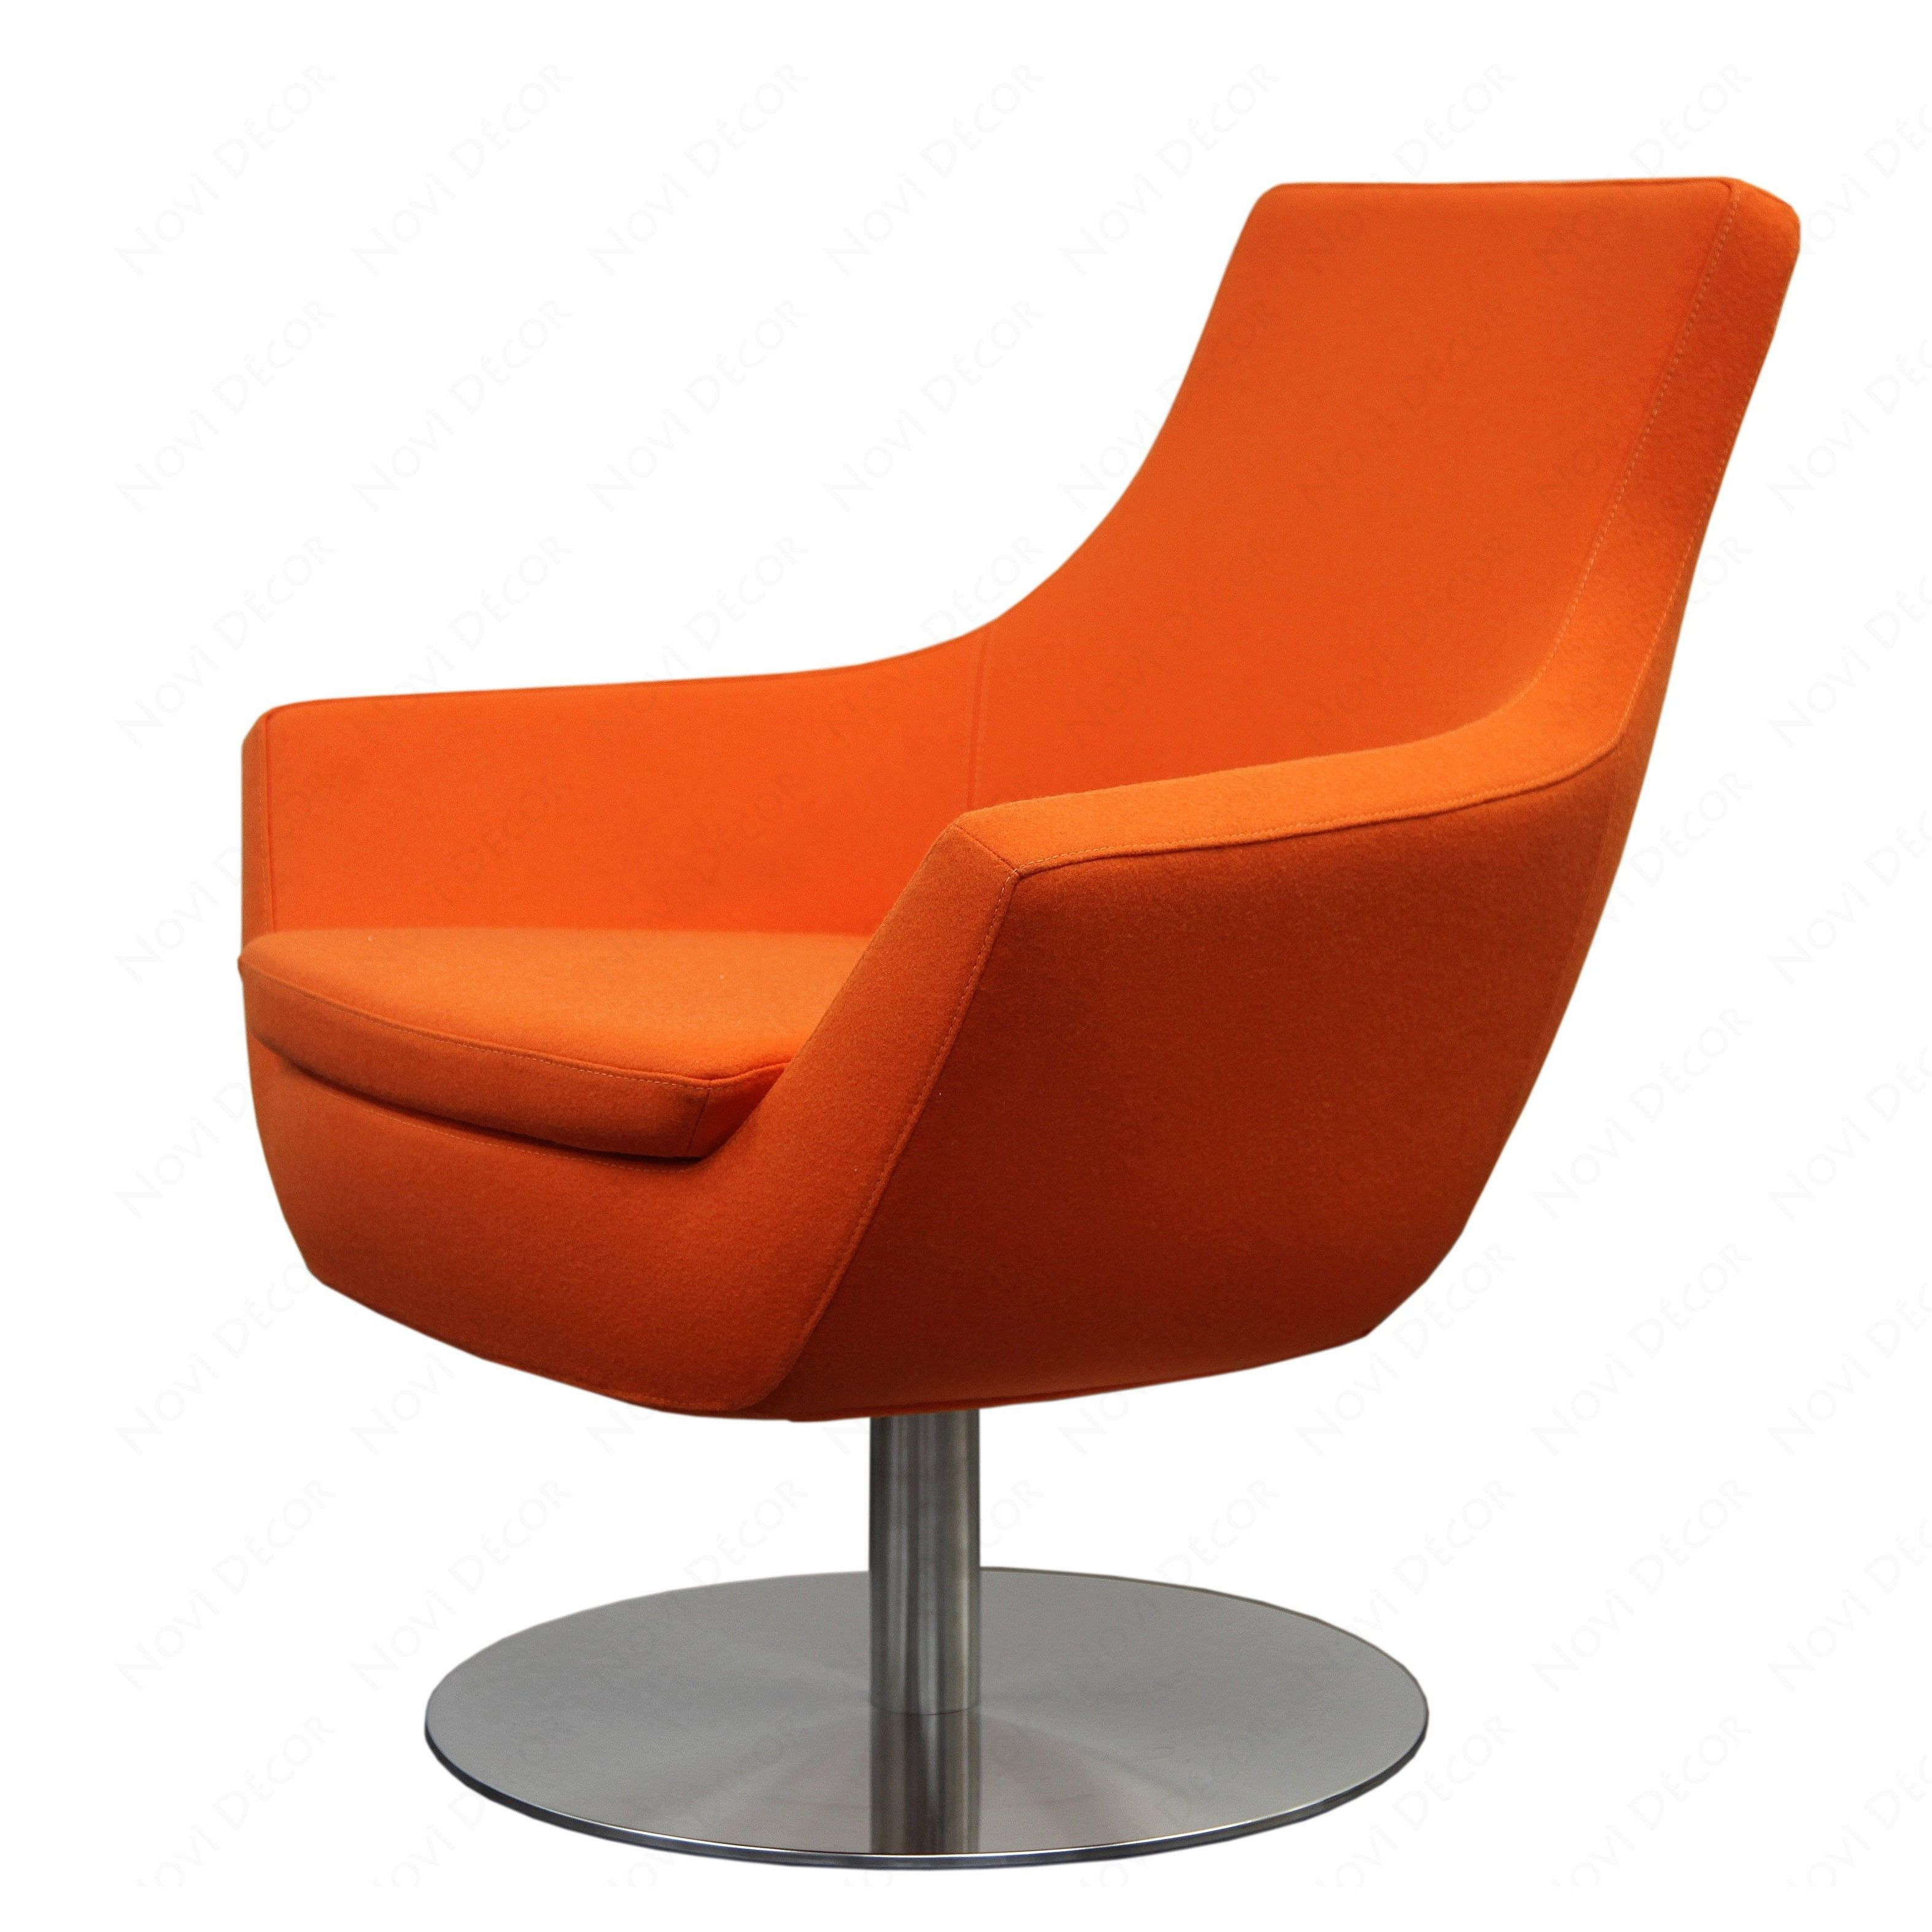 furniture accessories orange swivel chairs for living room